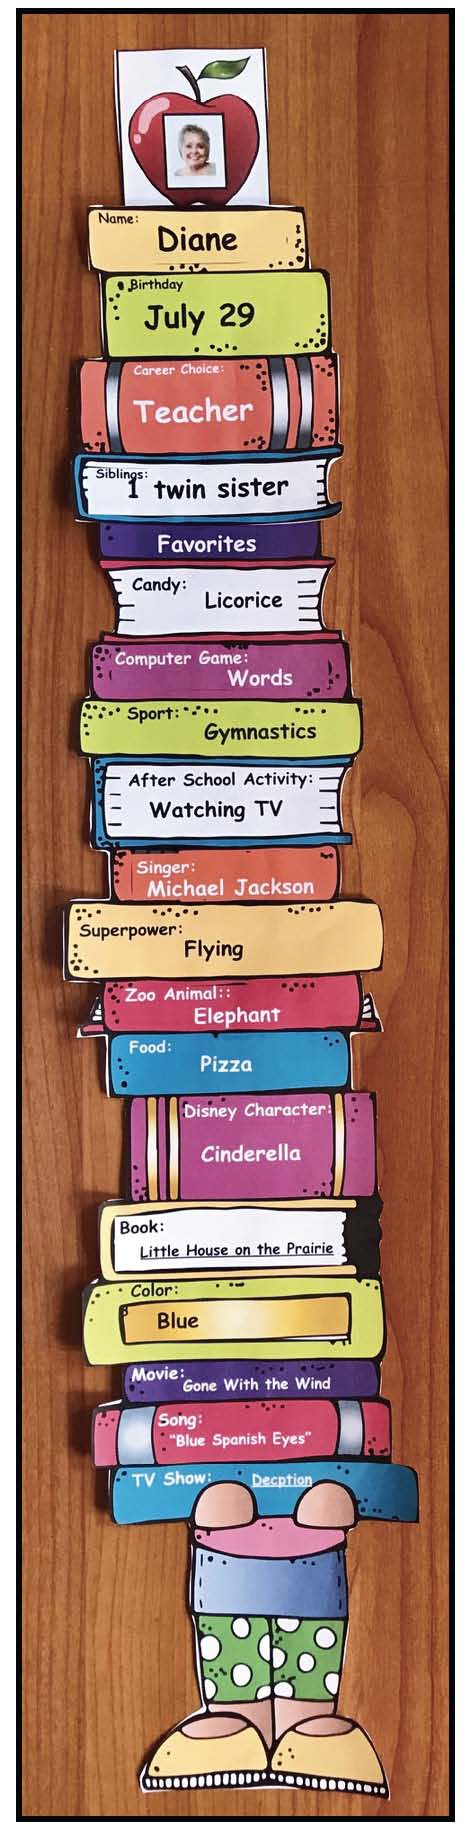 icebreakers for back to school, back to school activities, first day activities for school, back to school bulletin boards, idiom activities, no bullying activities, getting to know you activities